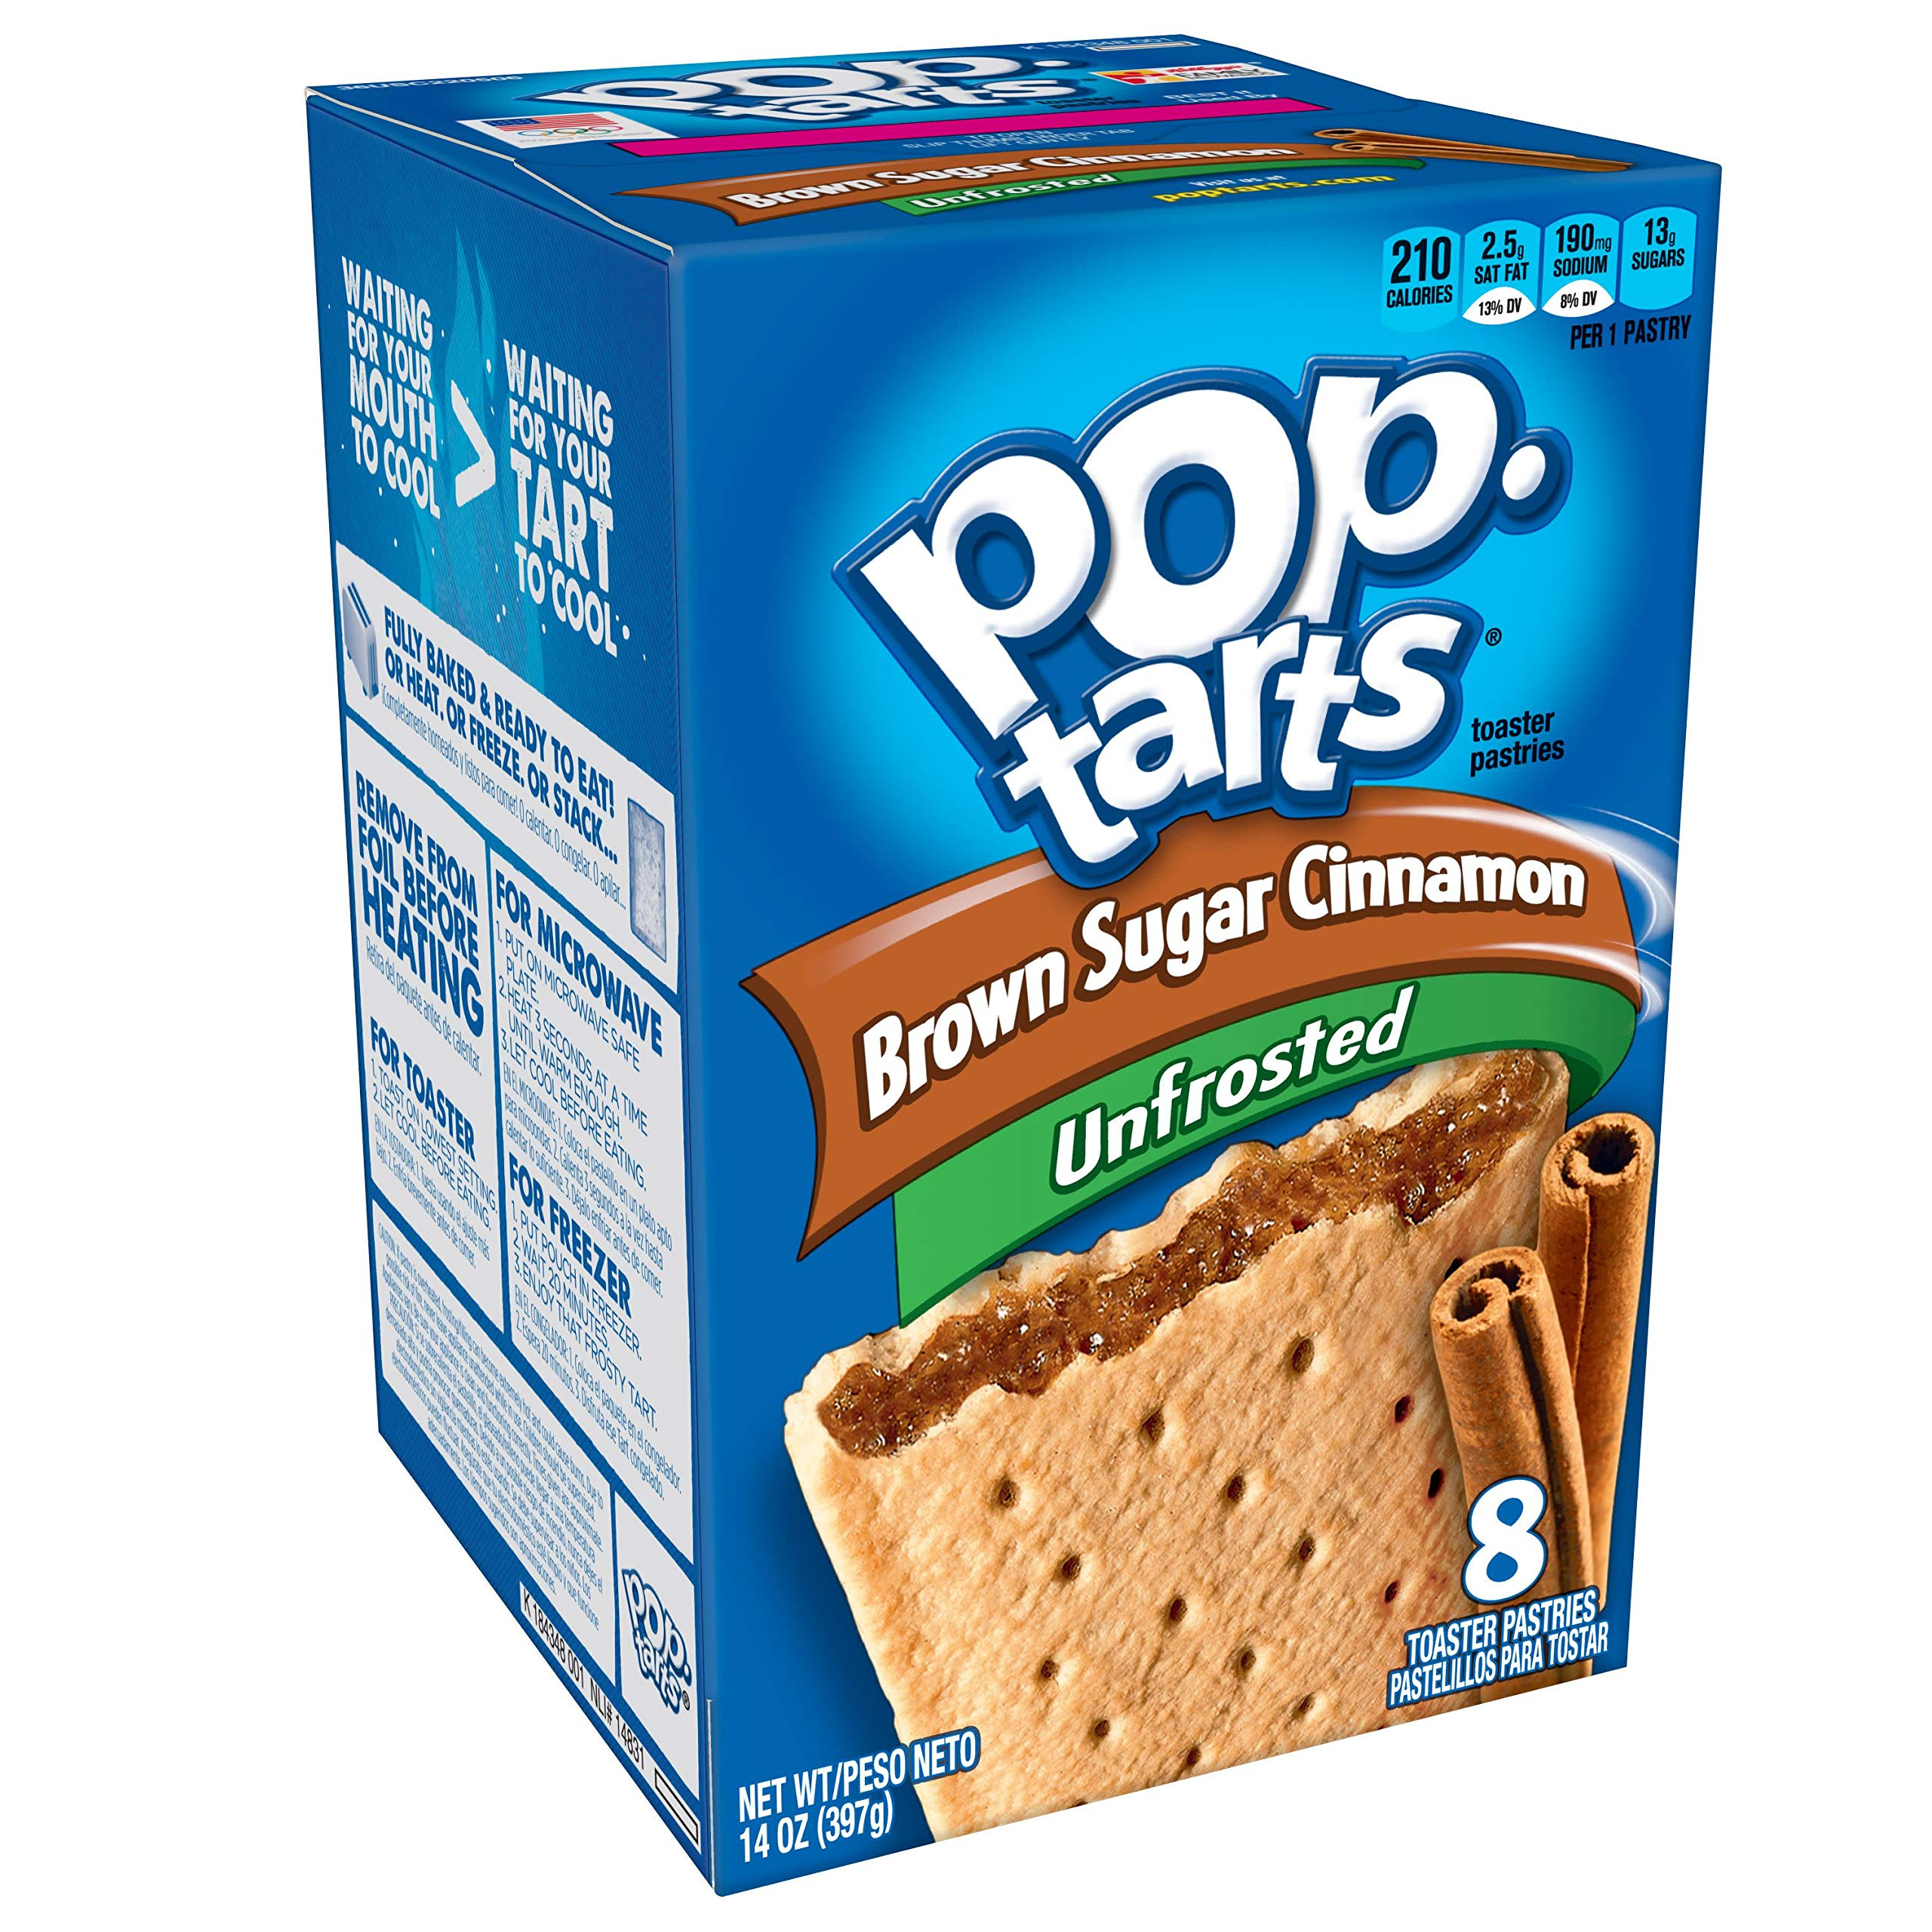 (Discontinued by Manufacturer)Pop-Tarts Breakfast Toaster Pastries, Unfrosted Brown Sugar Cinnamon Flavored